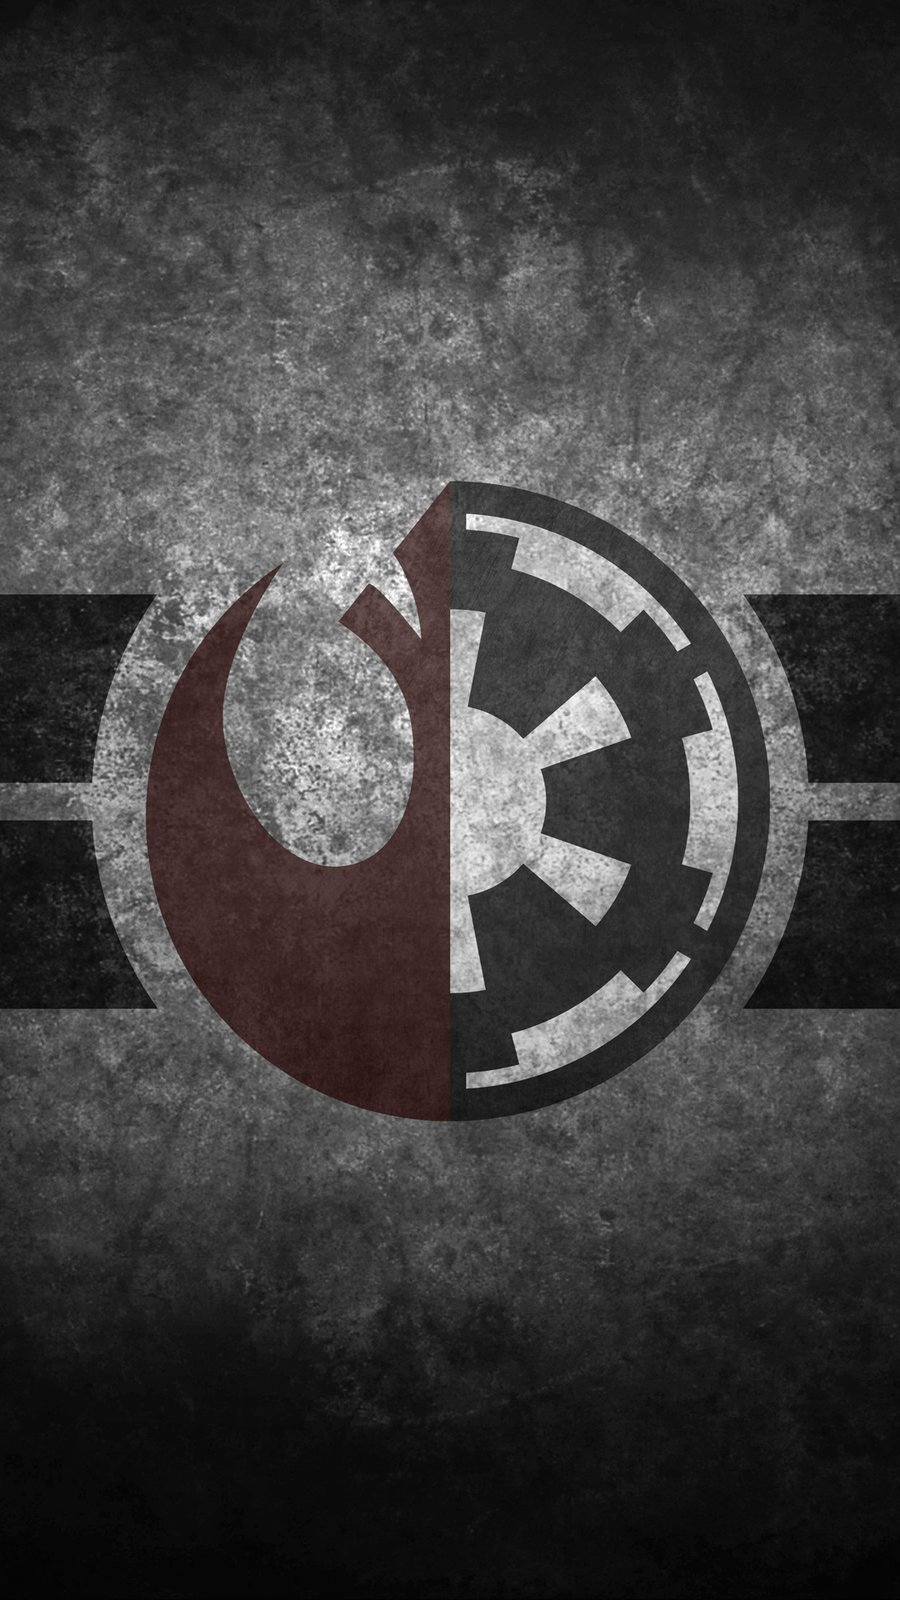 Star Wars Divided Allegiance Cellphone Wallpaper by swmand4 on 900x1600